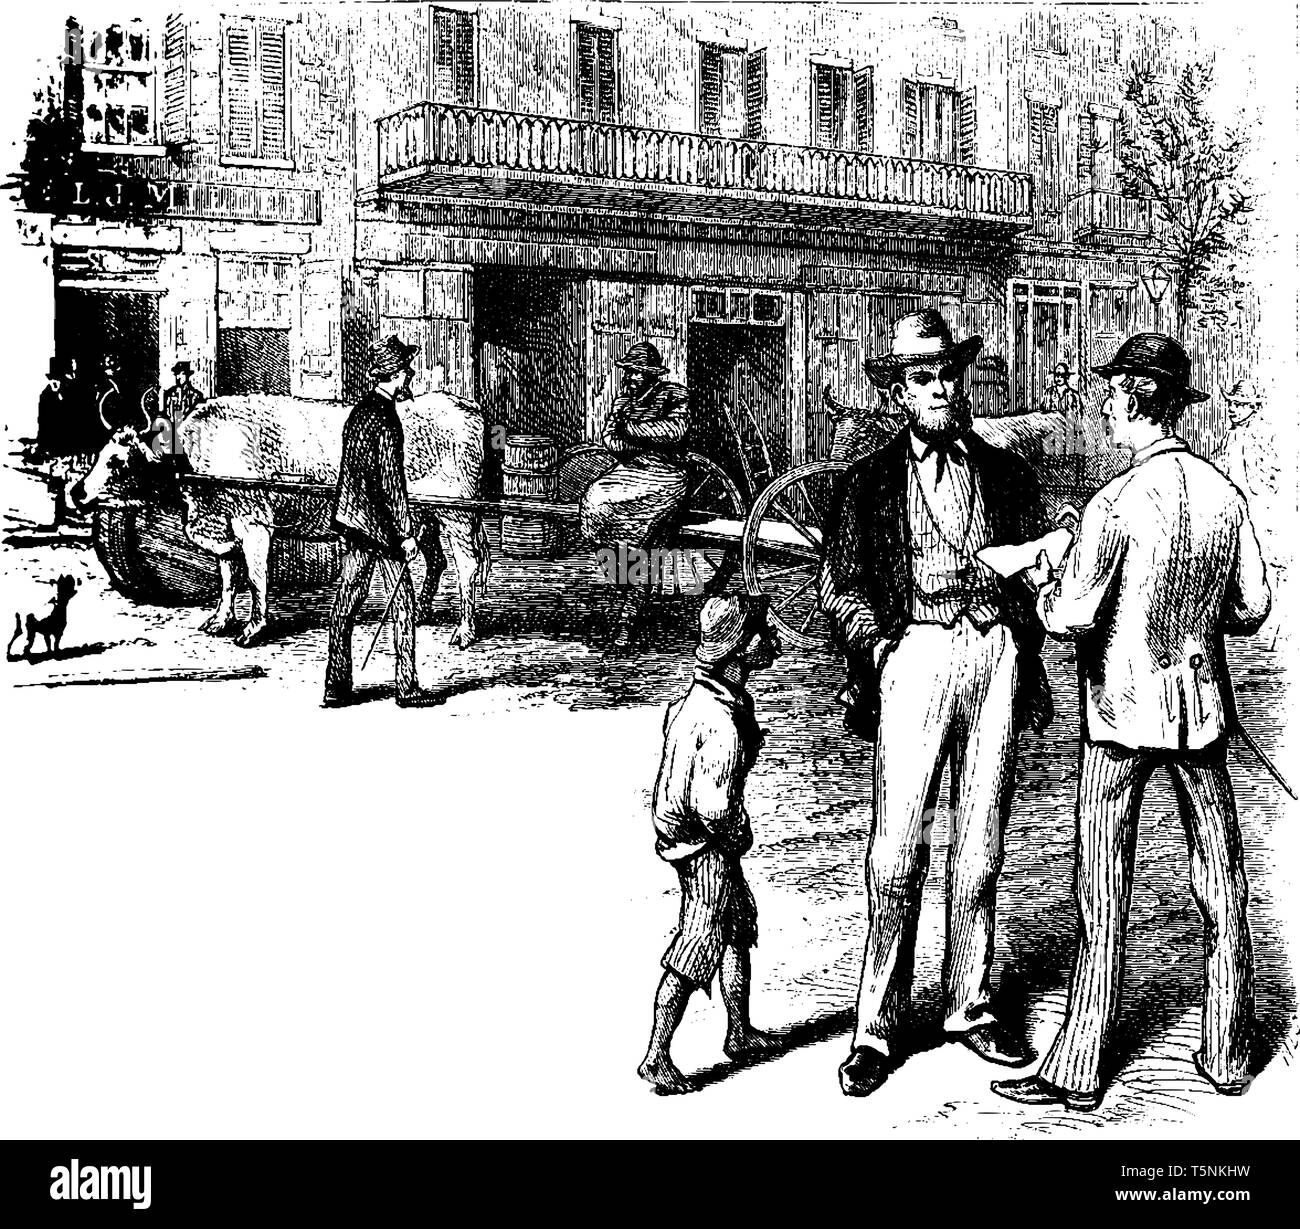 Men Talking on Street where two adult males standing on a busy street talking, vintage line drawing or engraving illustration. - Stock Vector